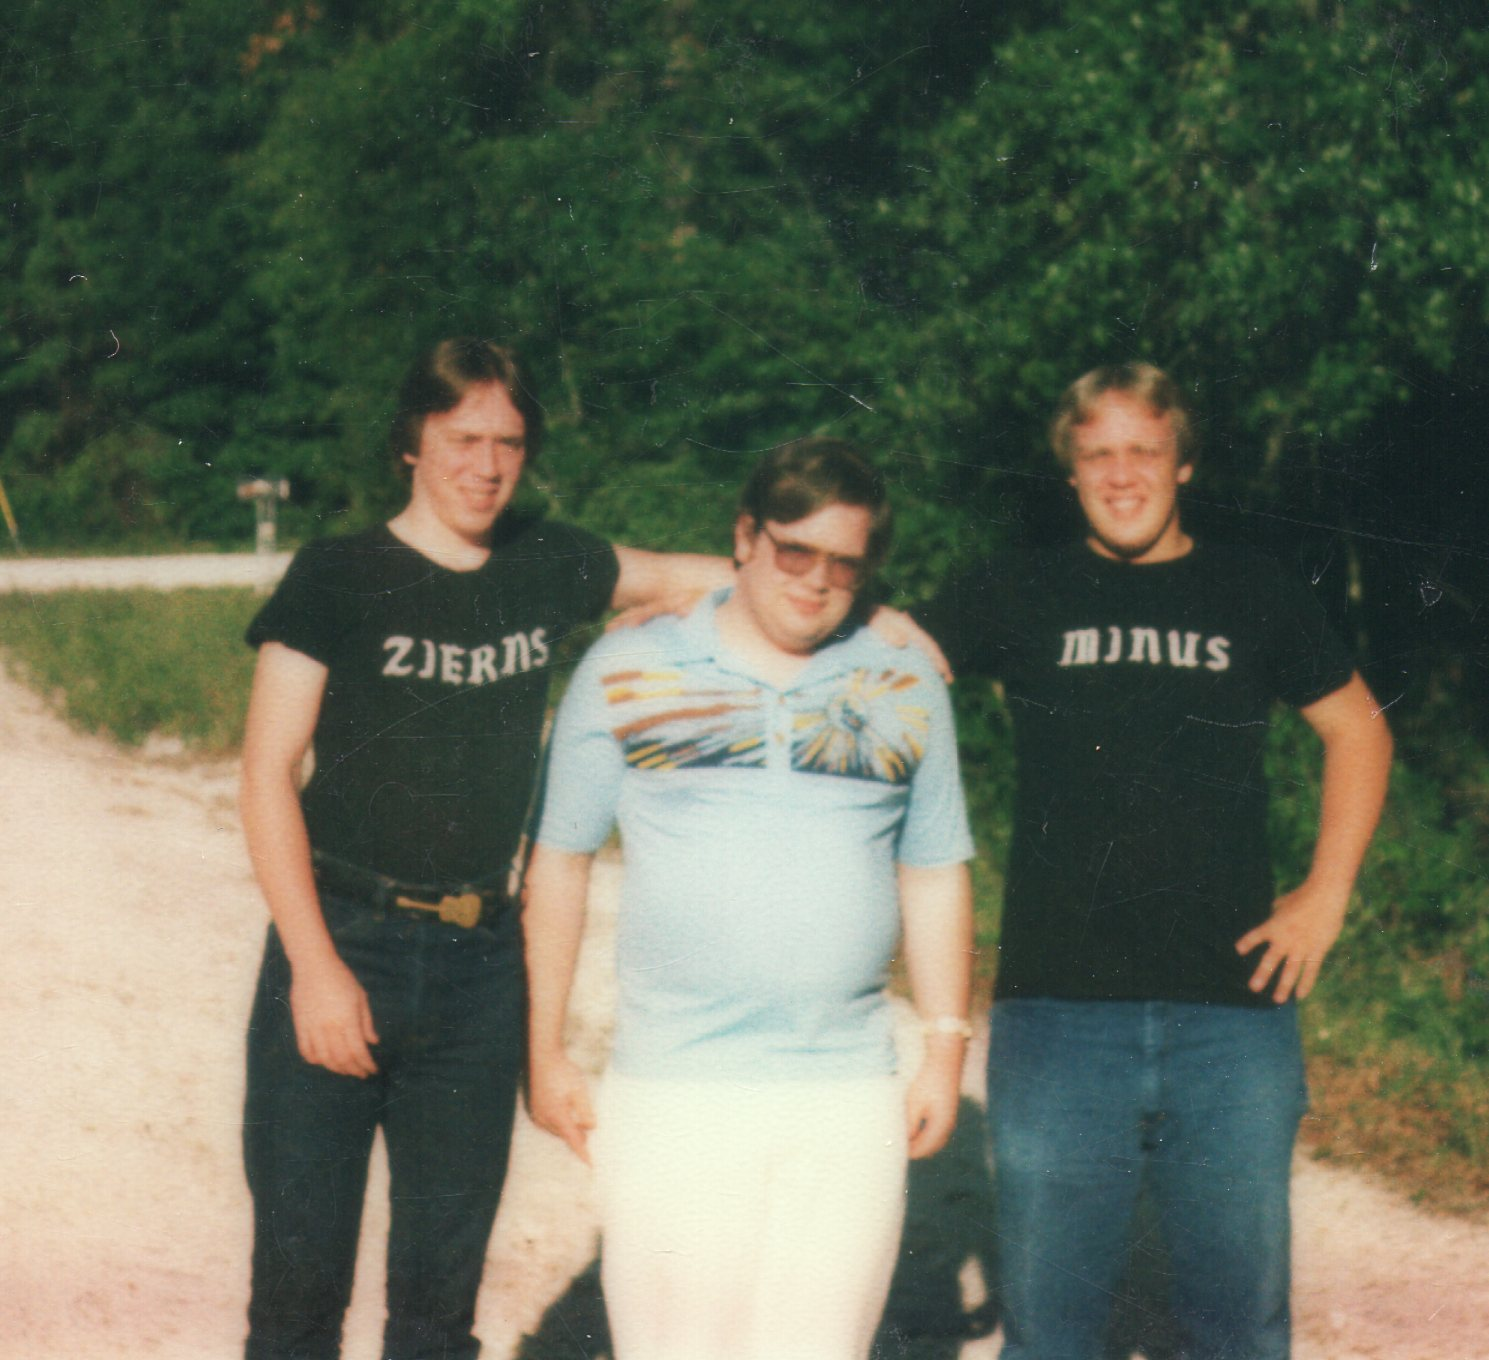 """James on left, and brothers Kevin and Bruce """"Note the Zierns shirt I wore ,was my nick name. that is where the name came from."""""""